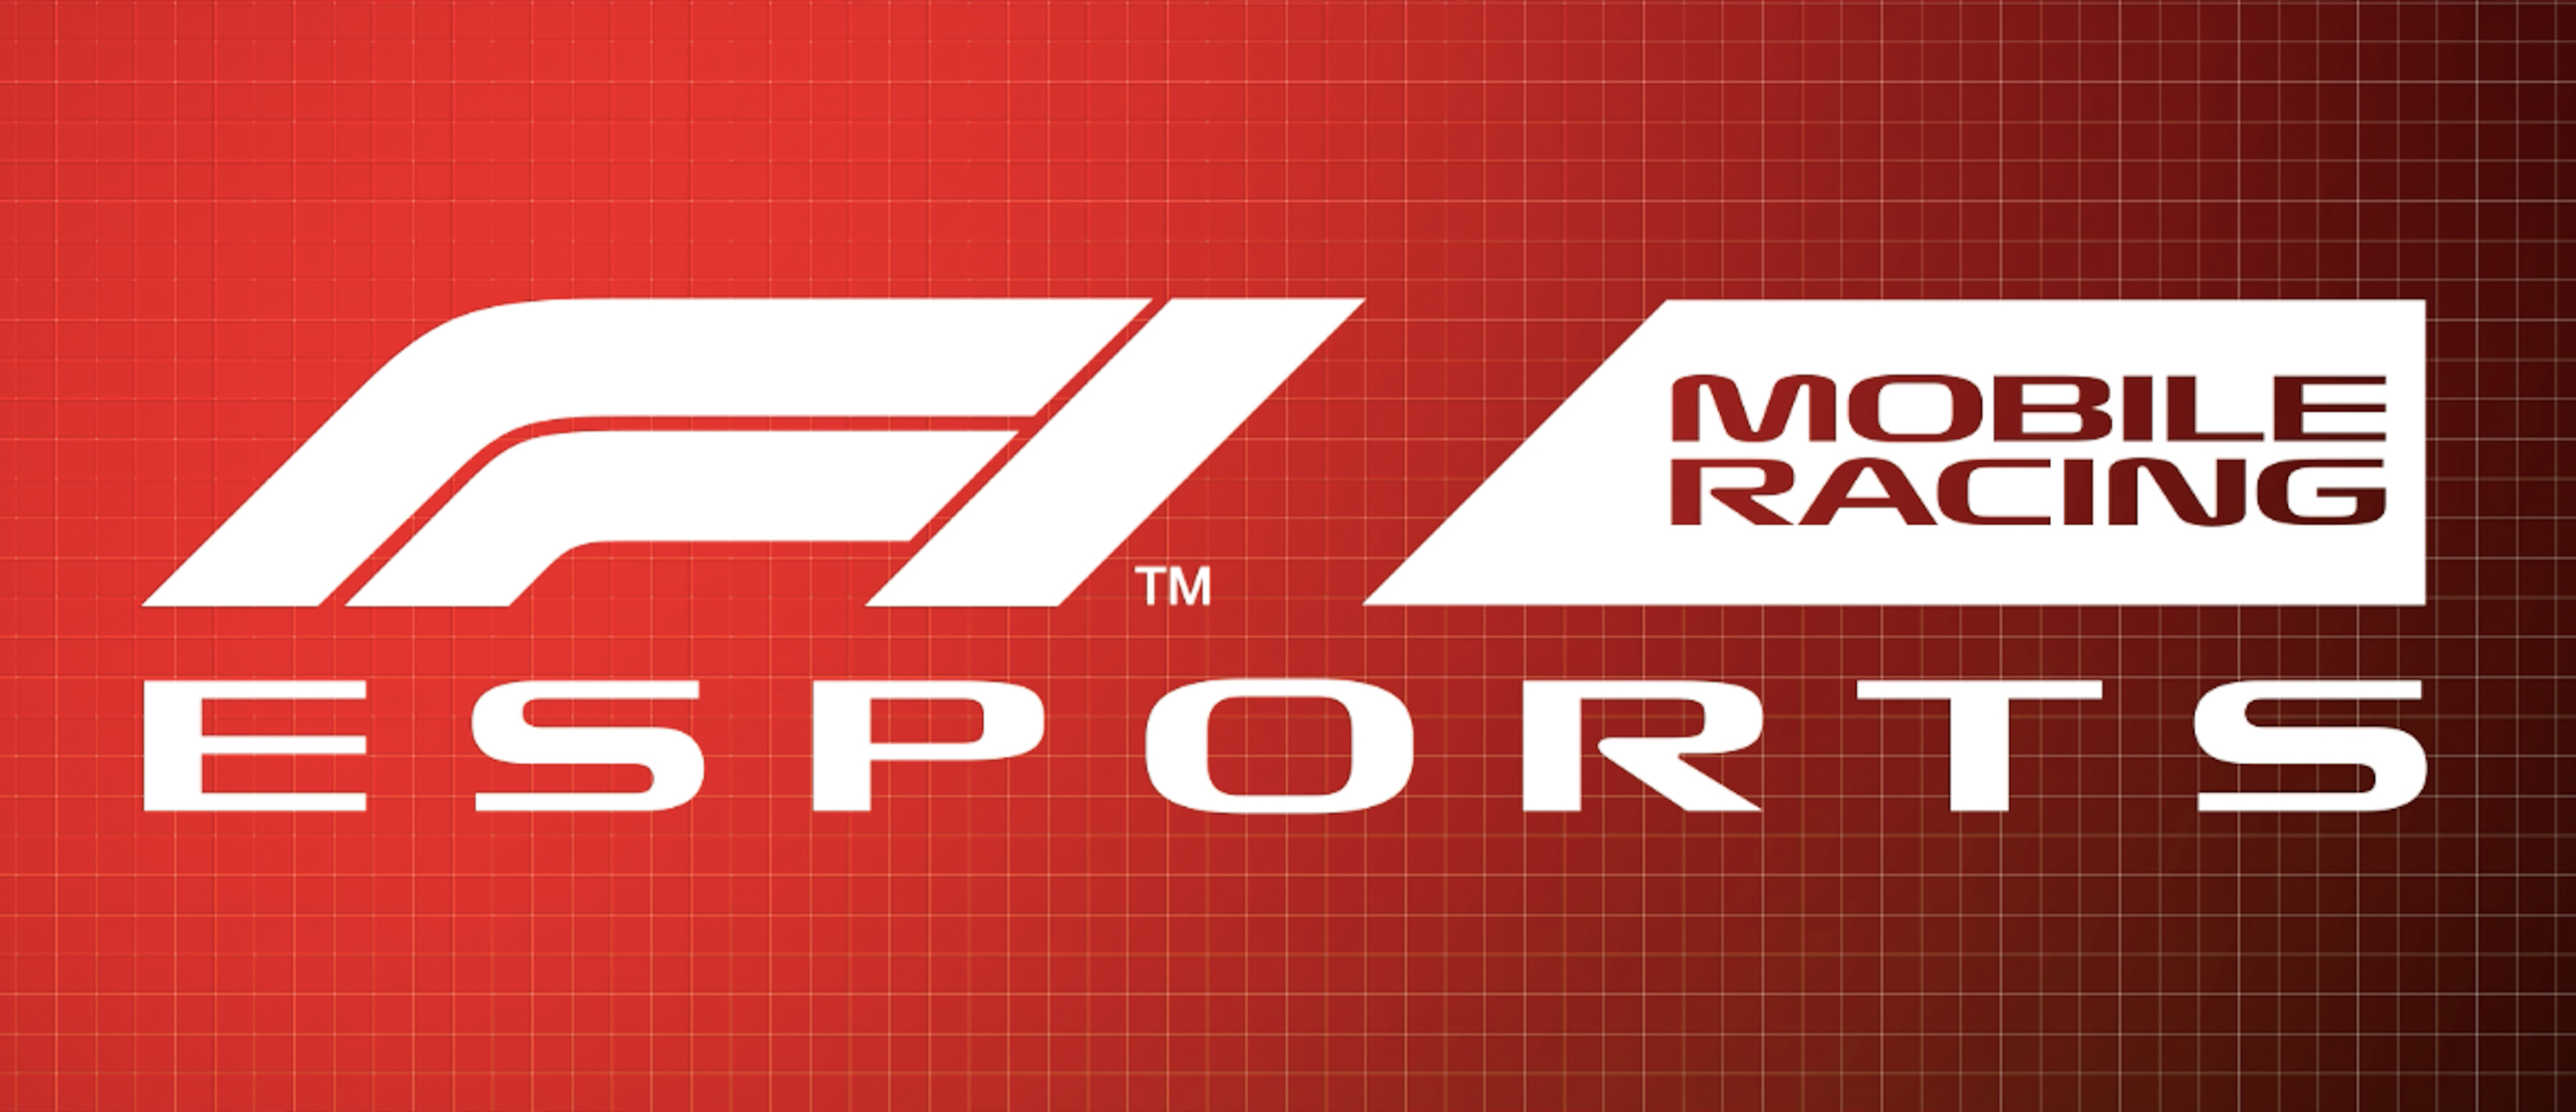 F1 Esports Launches First Ever Mobile Racing Championship